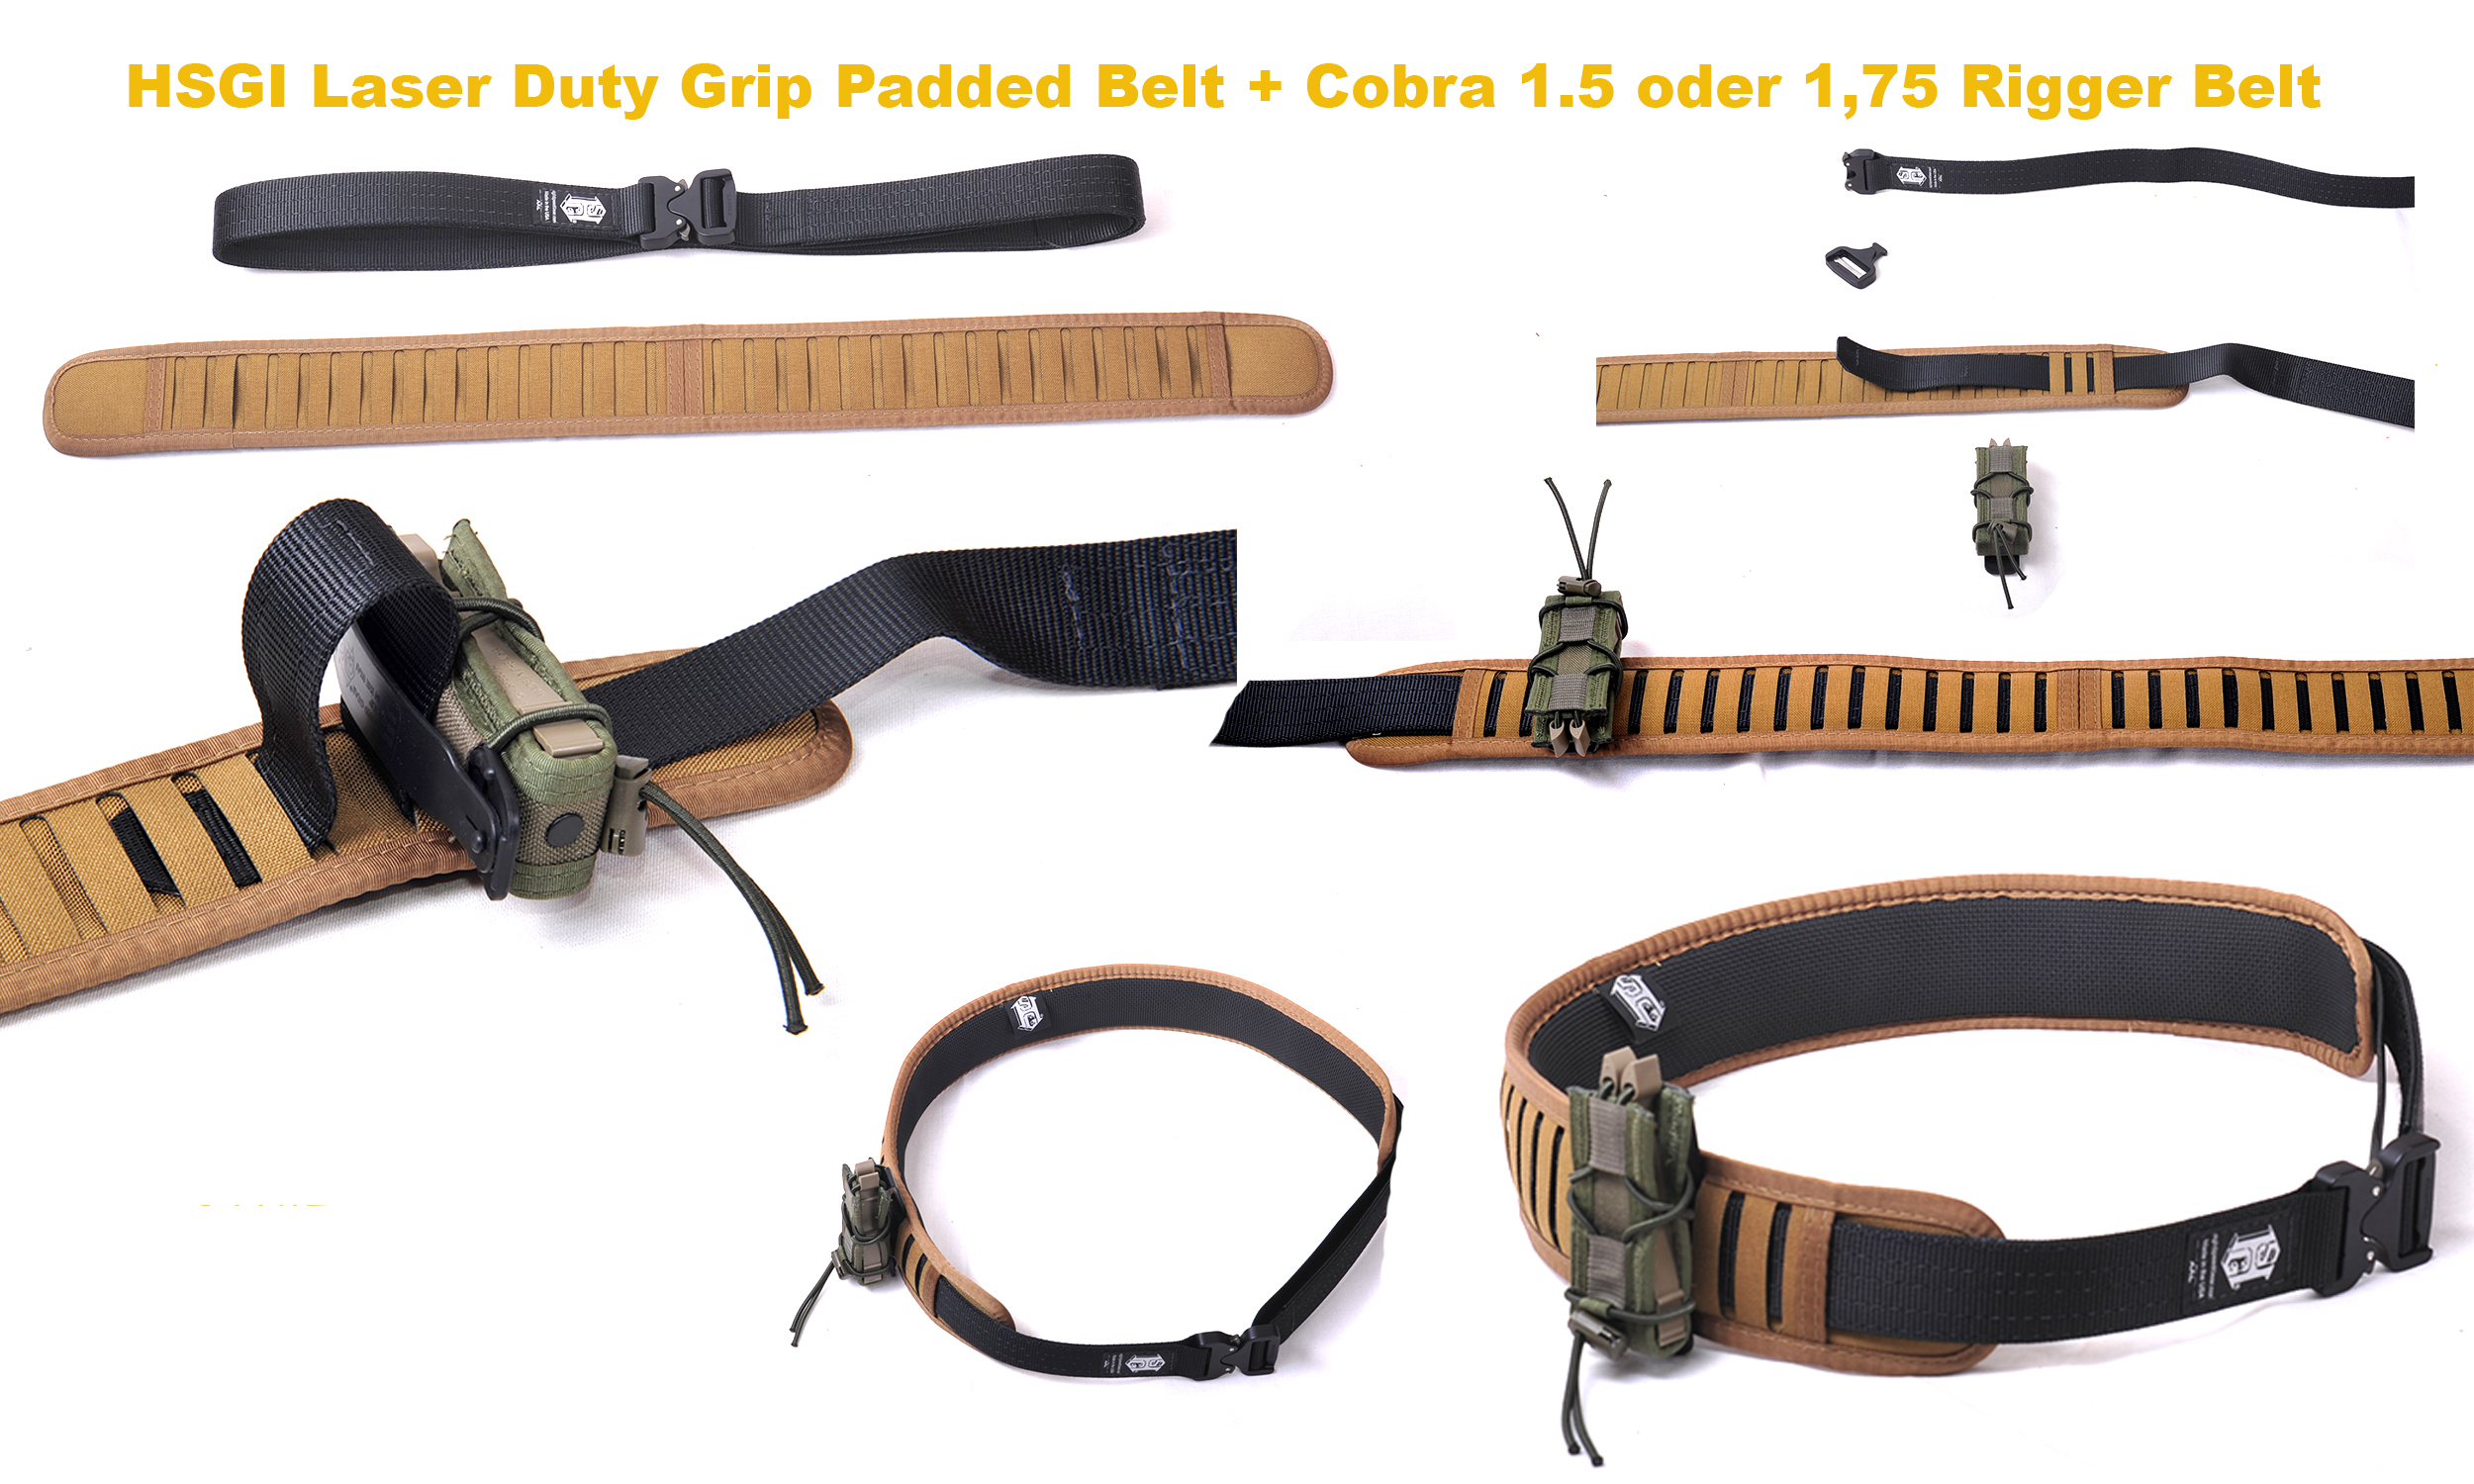 High Speed Gear Laser Duty Grip Padded Belt